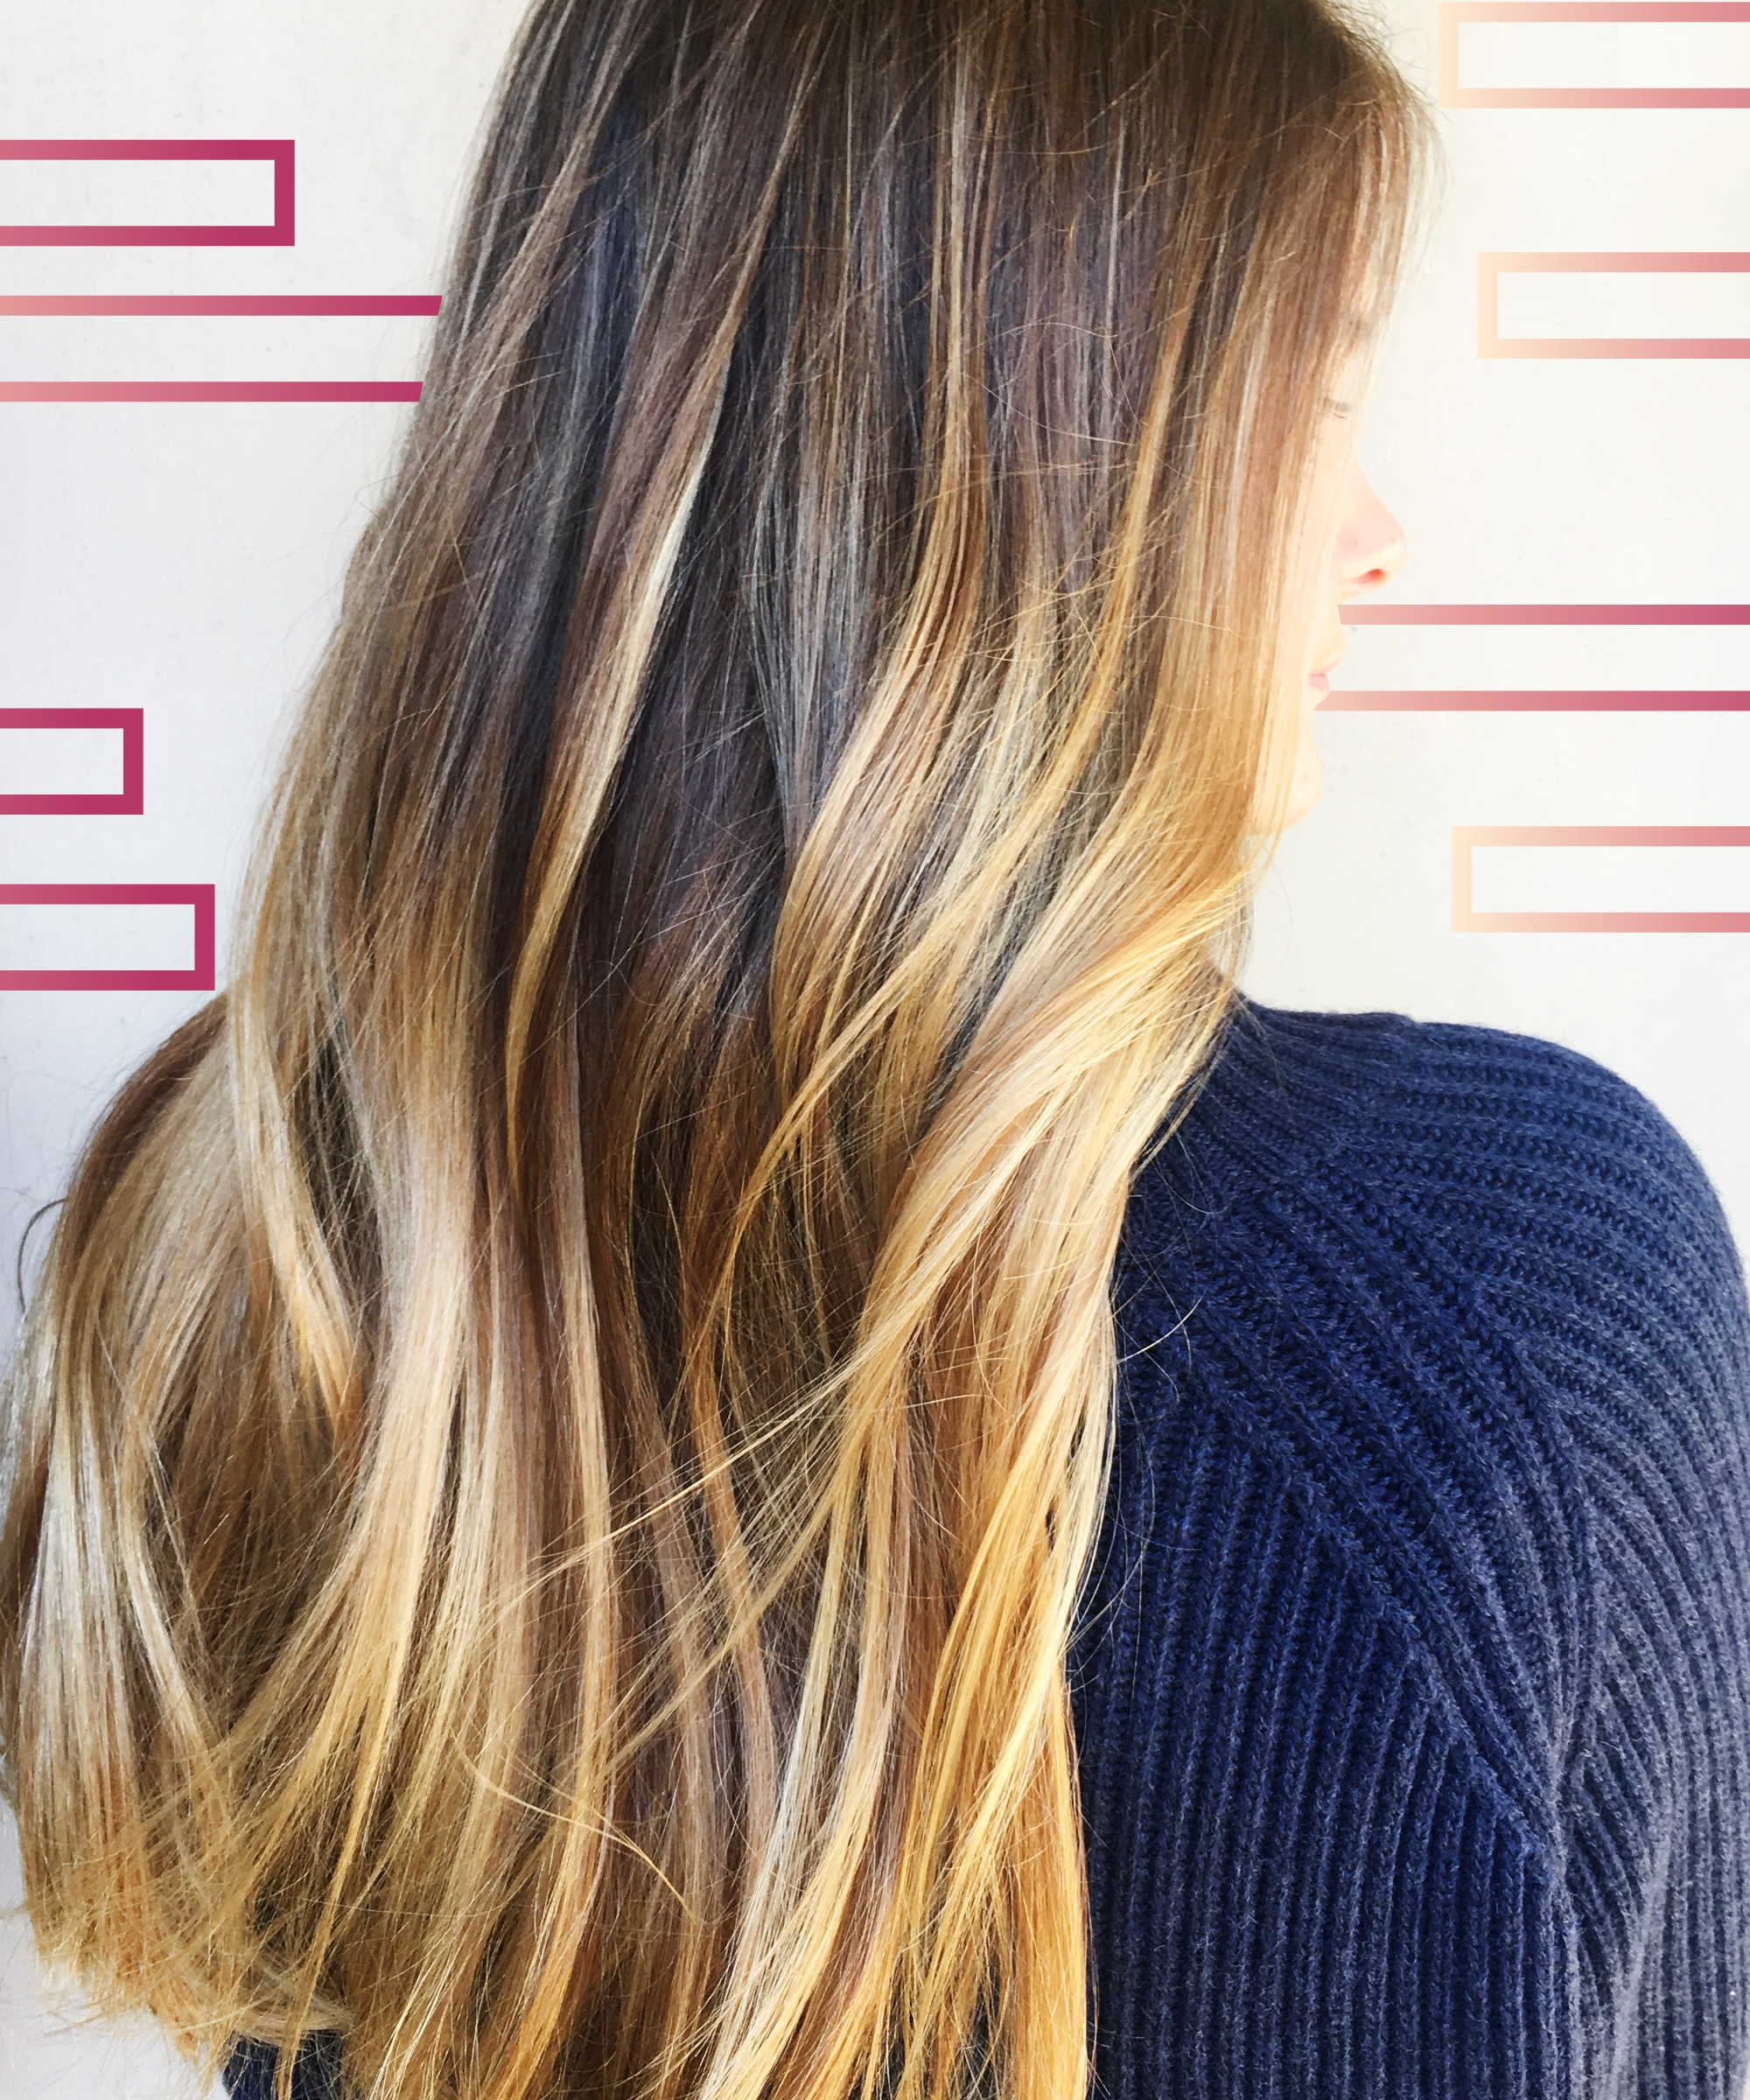 La Natural Blonde Hair Color Technique Gloss Smudging Throughout Recent Root Fade Into Blonde Hairstyles (View 11 of 20)